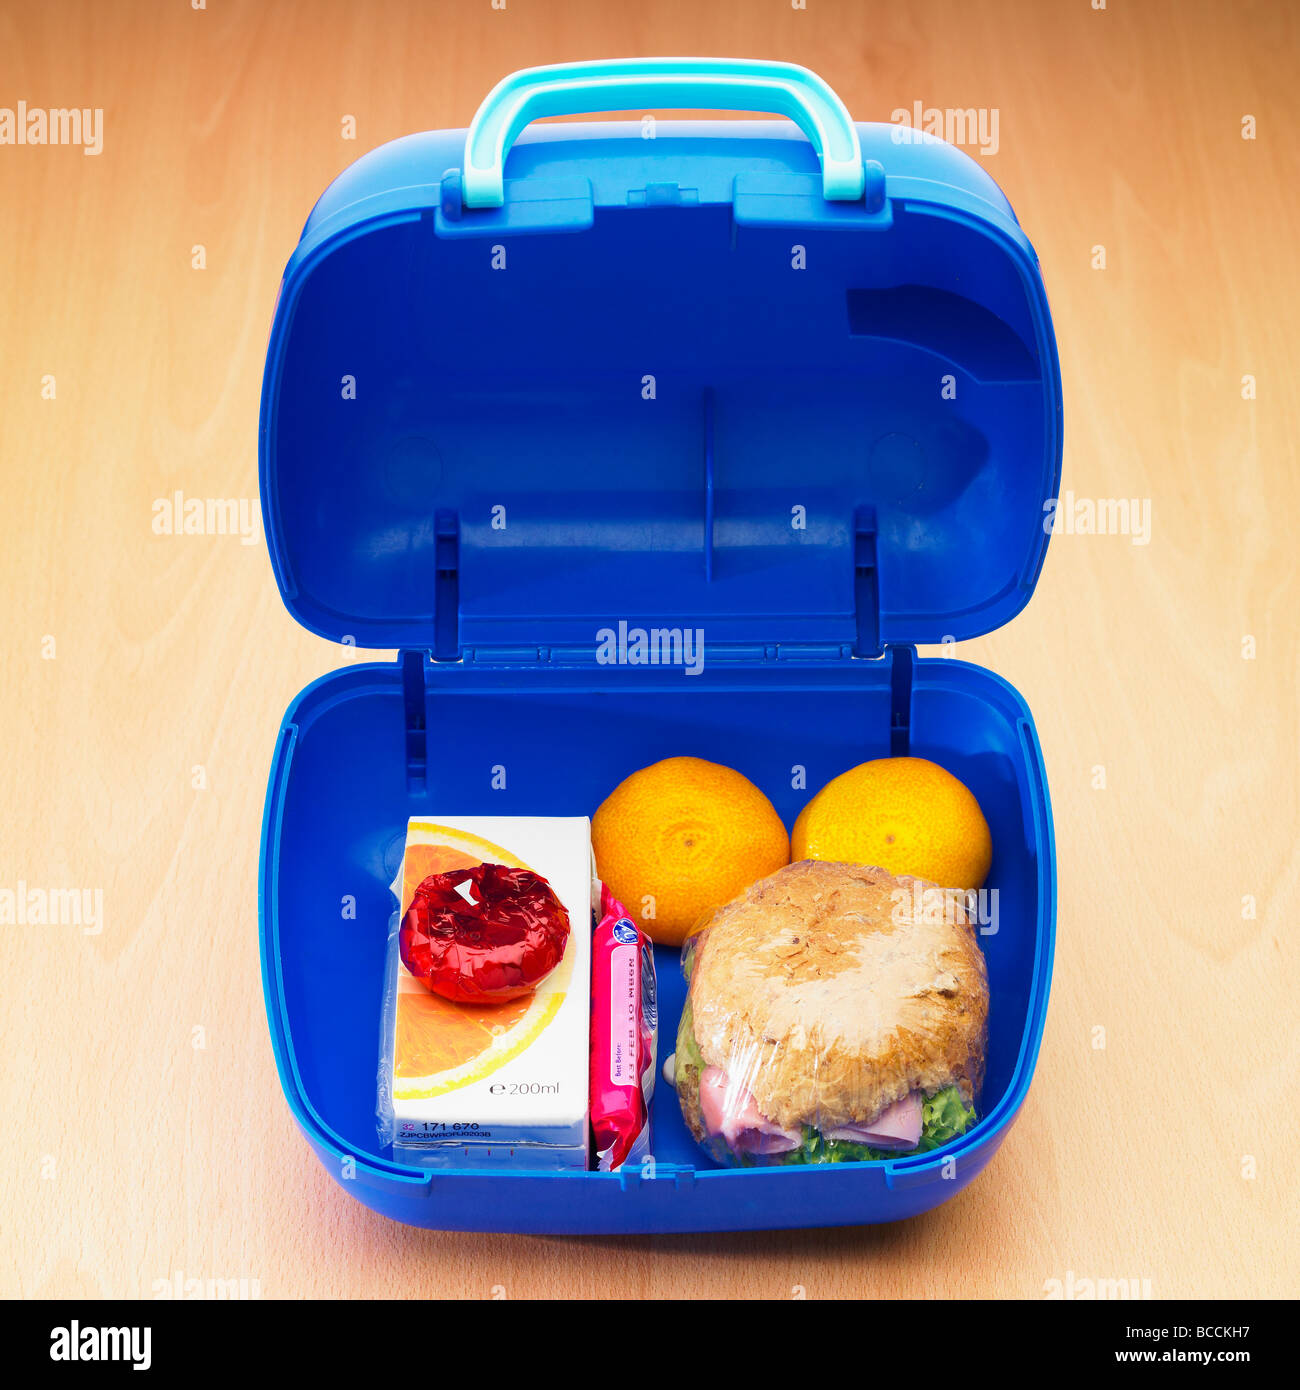 unethical marketing of childrens lunchbox foods Yes advertising aimed at children brings negative social consequencesmuch of it is for food and drinks that are very unhealthy encouraging gullible children to consume so much fatty, sugary and salty food is unethical because it creates obese, unhealthy youngsters, with bad eating habits that will be with them for life.